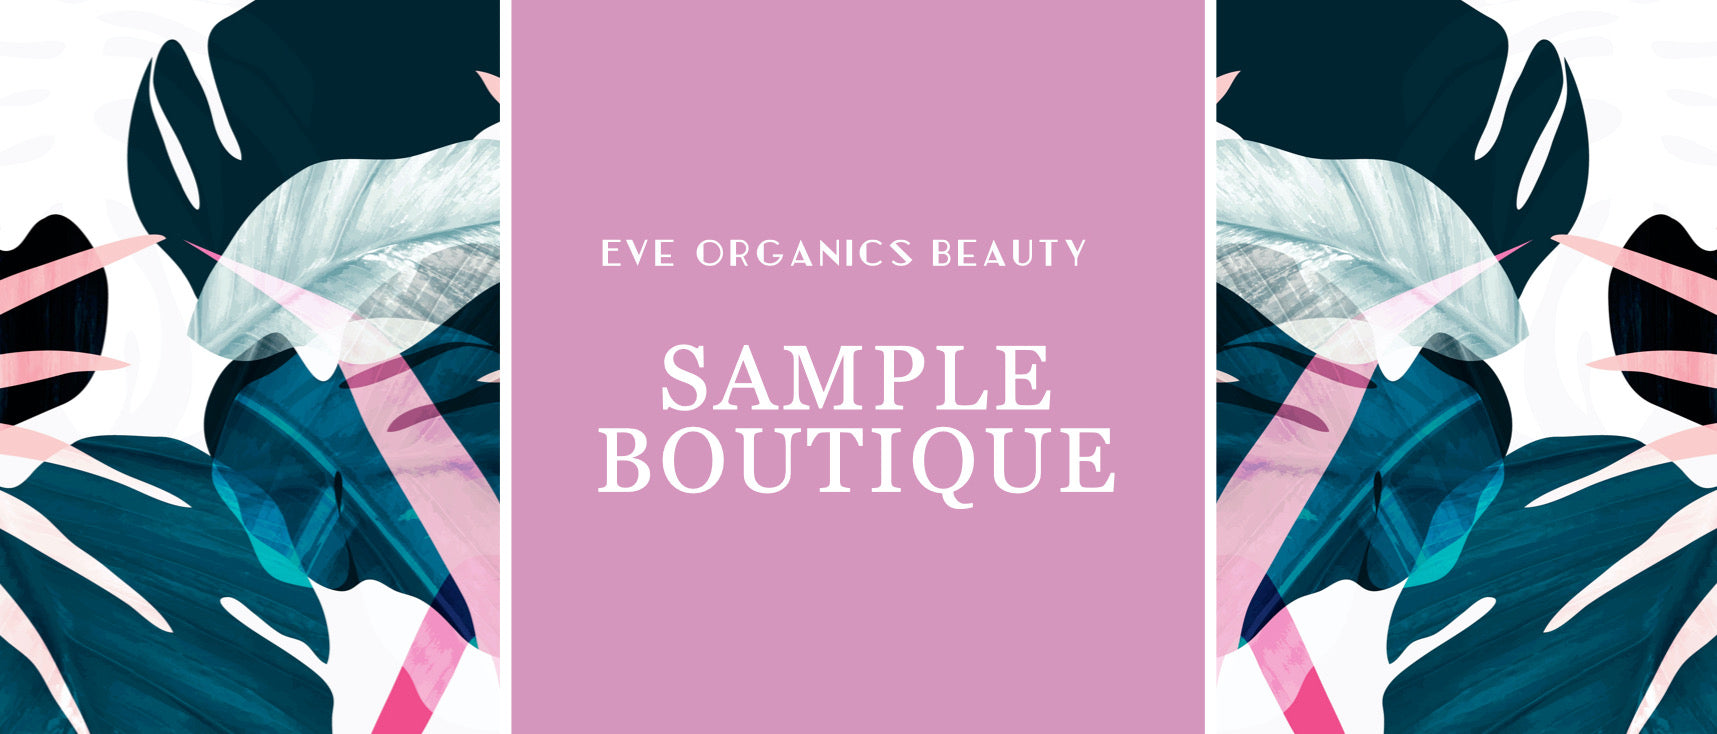 SAMPLE BOUTIQUE